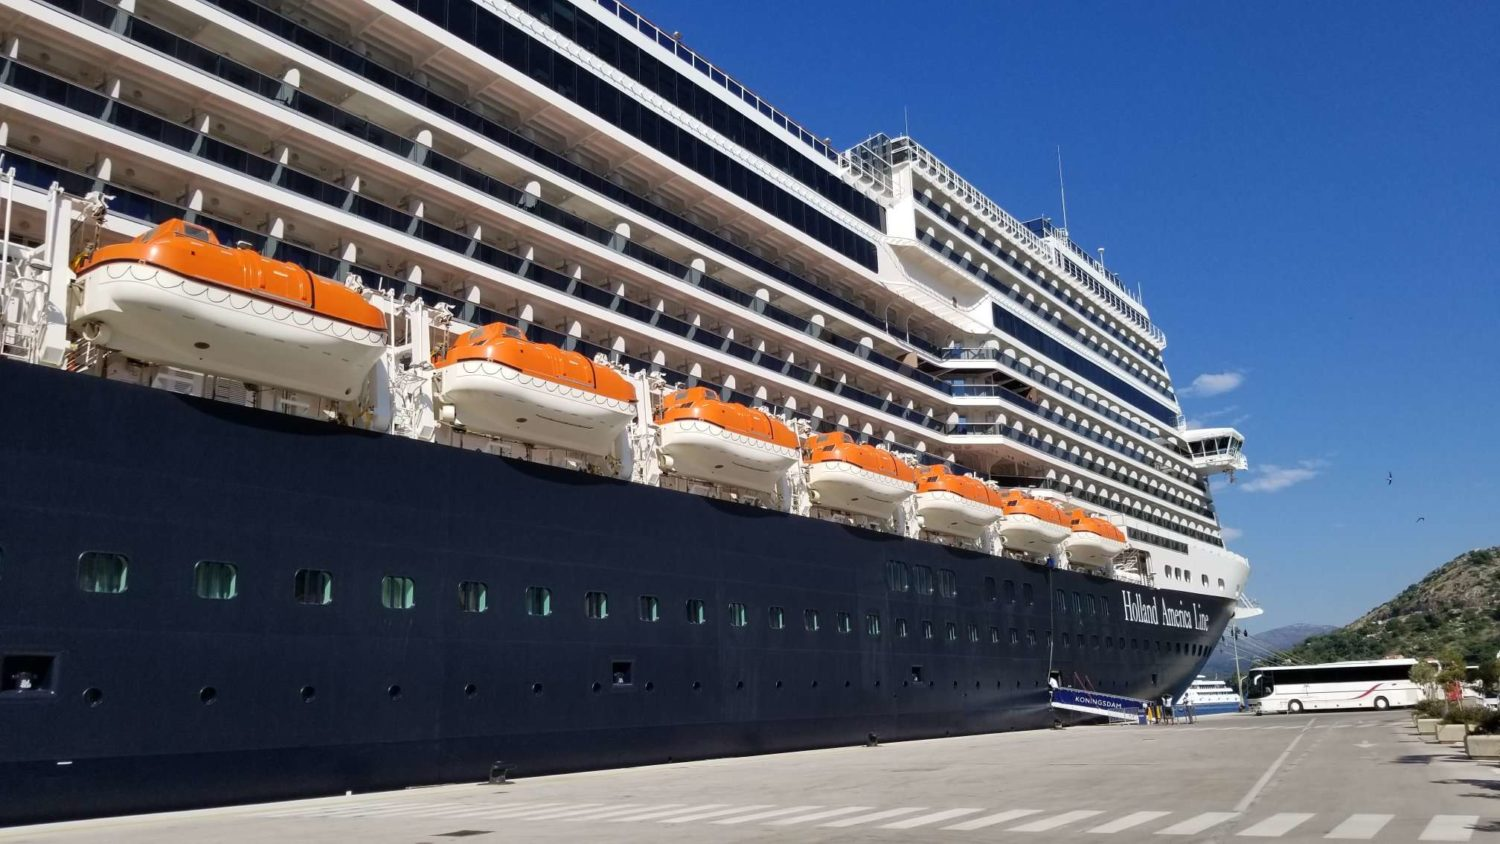 First Impressions of Holland America Line